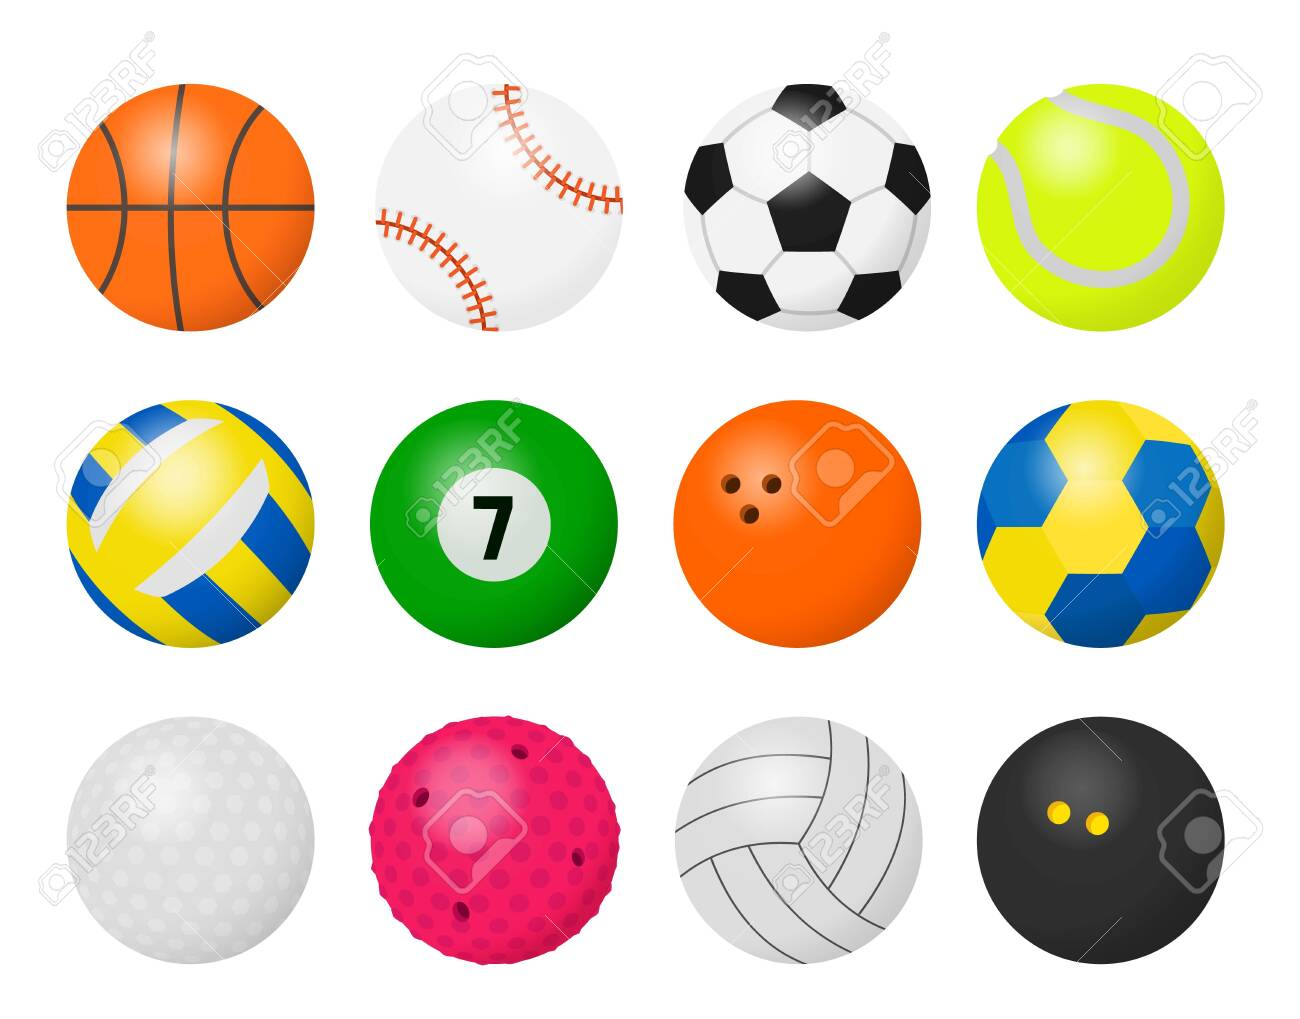 Sport Balls Cartoon Equipment For Playing Sport Games Football Royalty Free Cliparts Vectors And Stock Illustration Image 140508901